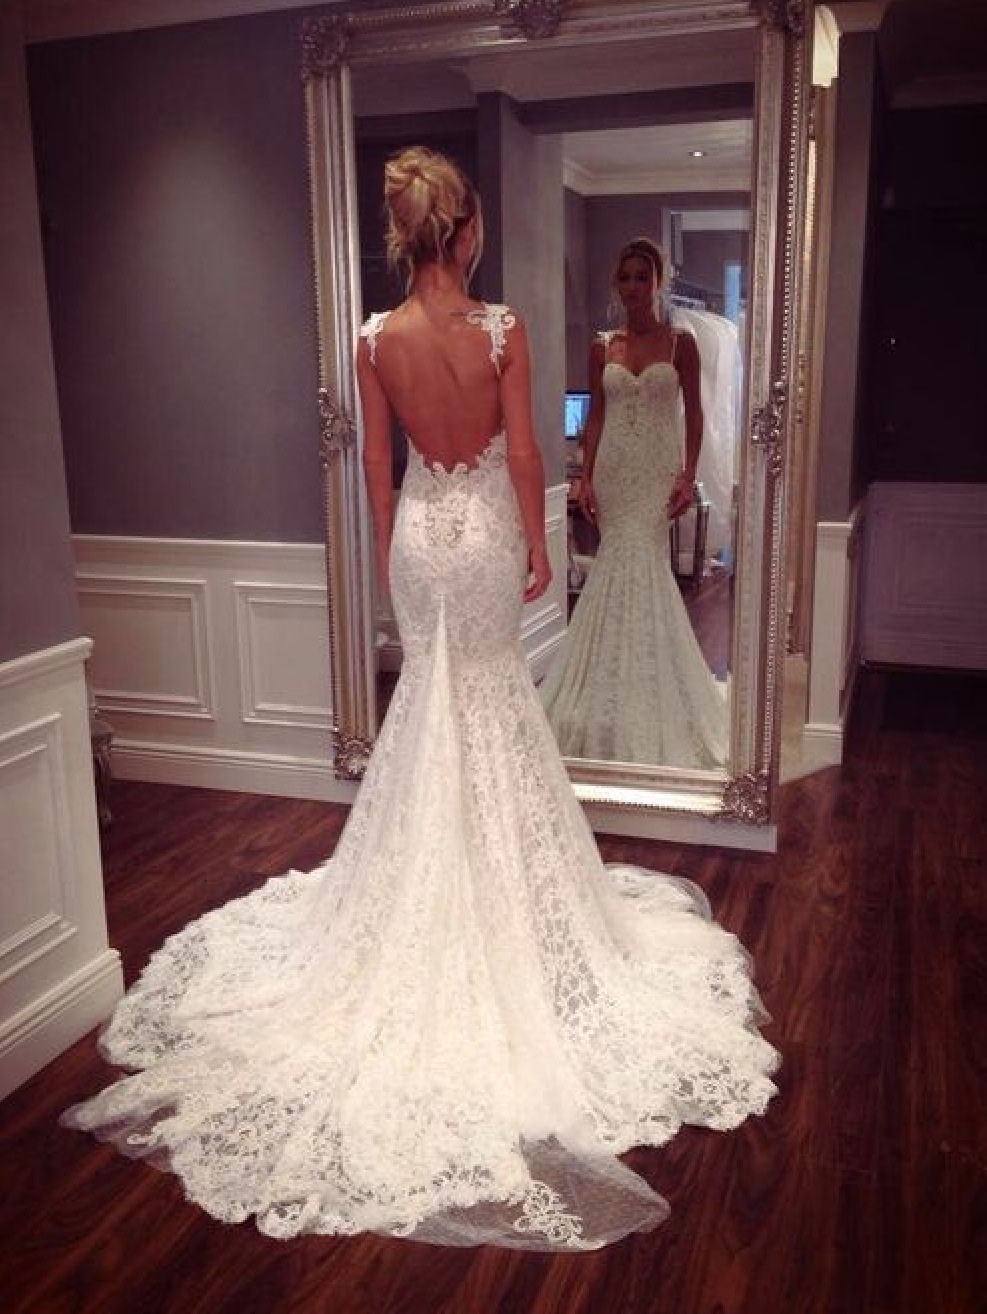 Low back dresses -pictures - Weddingbee | Wedding Ideas | Pinterest ...